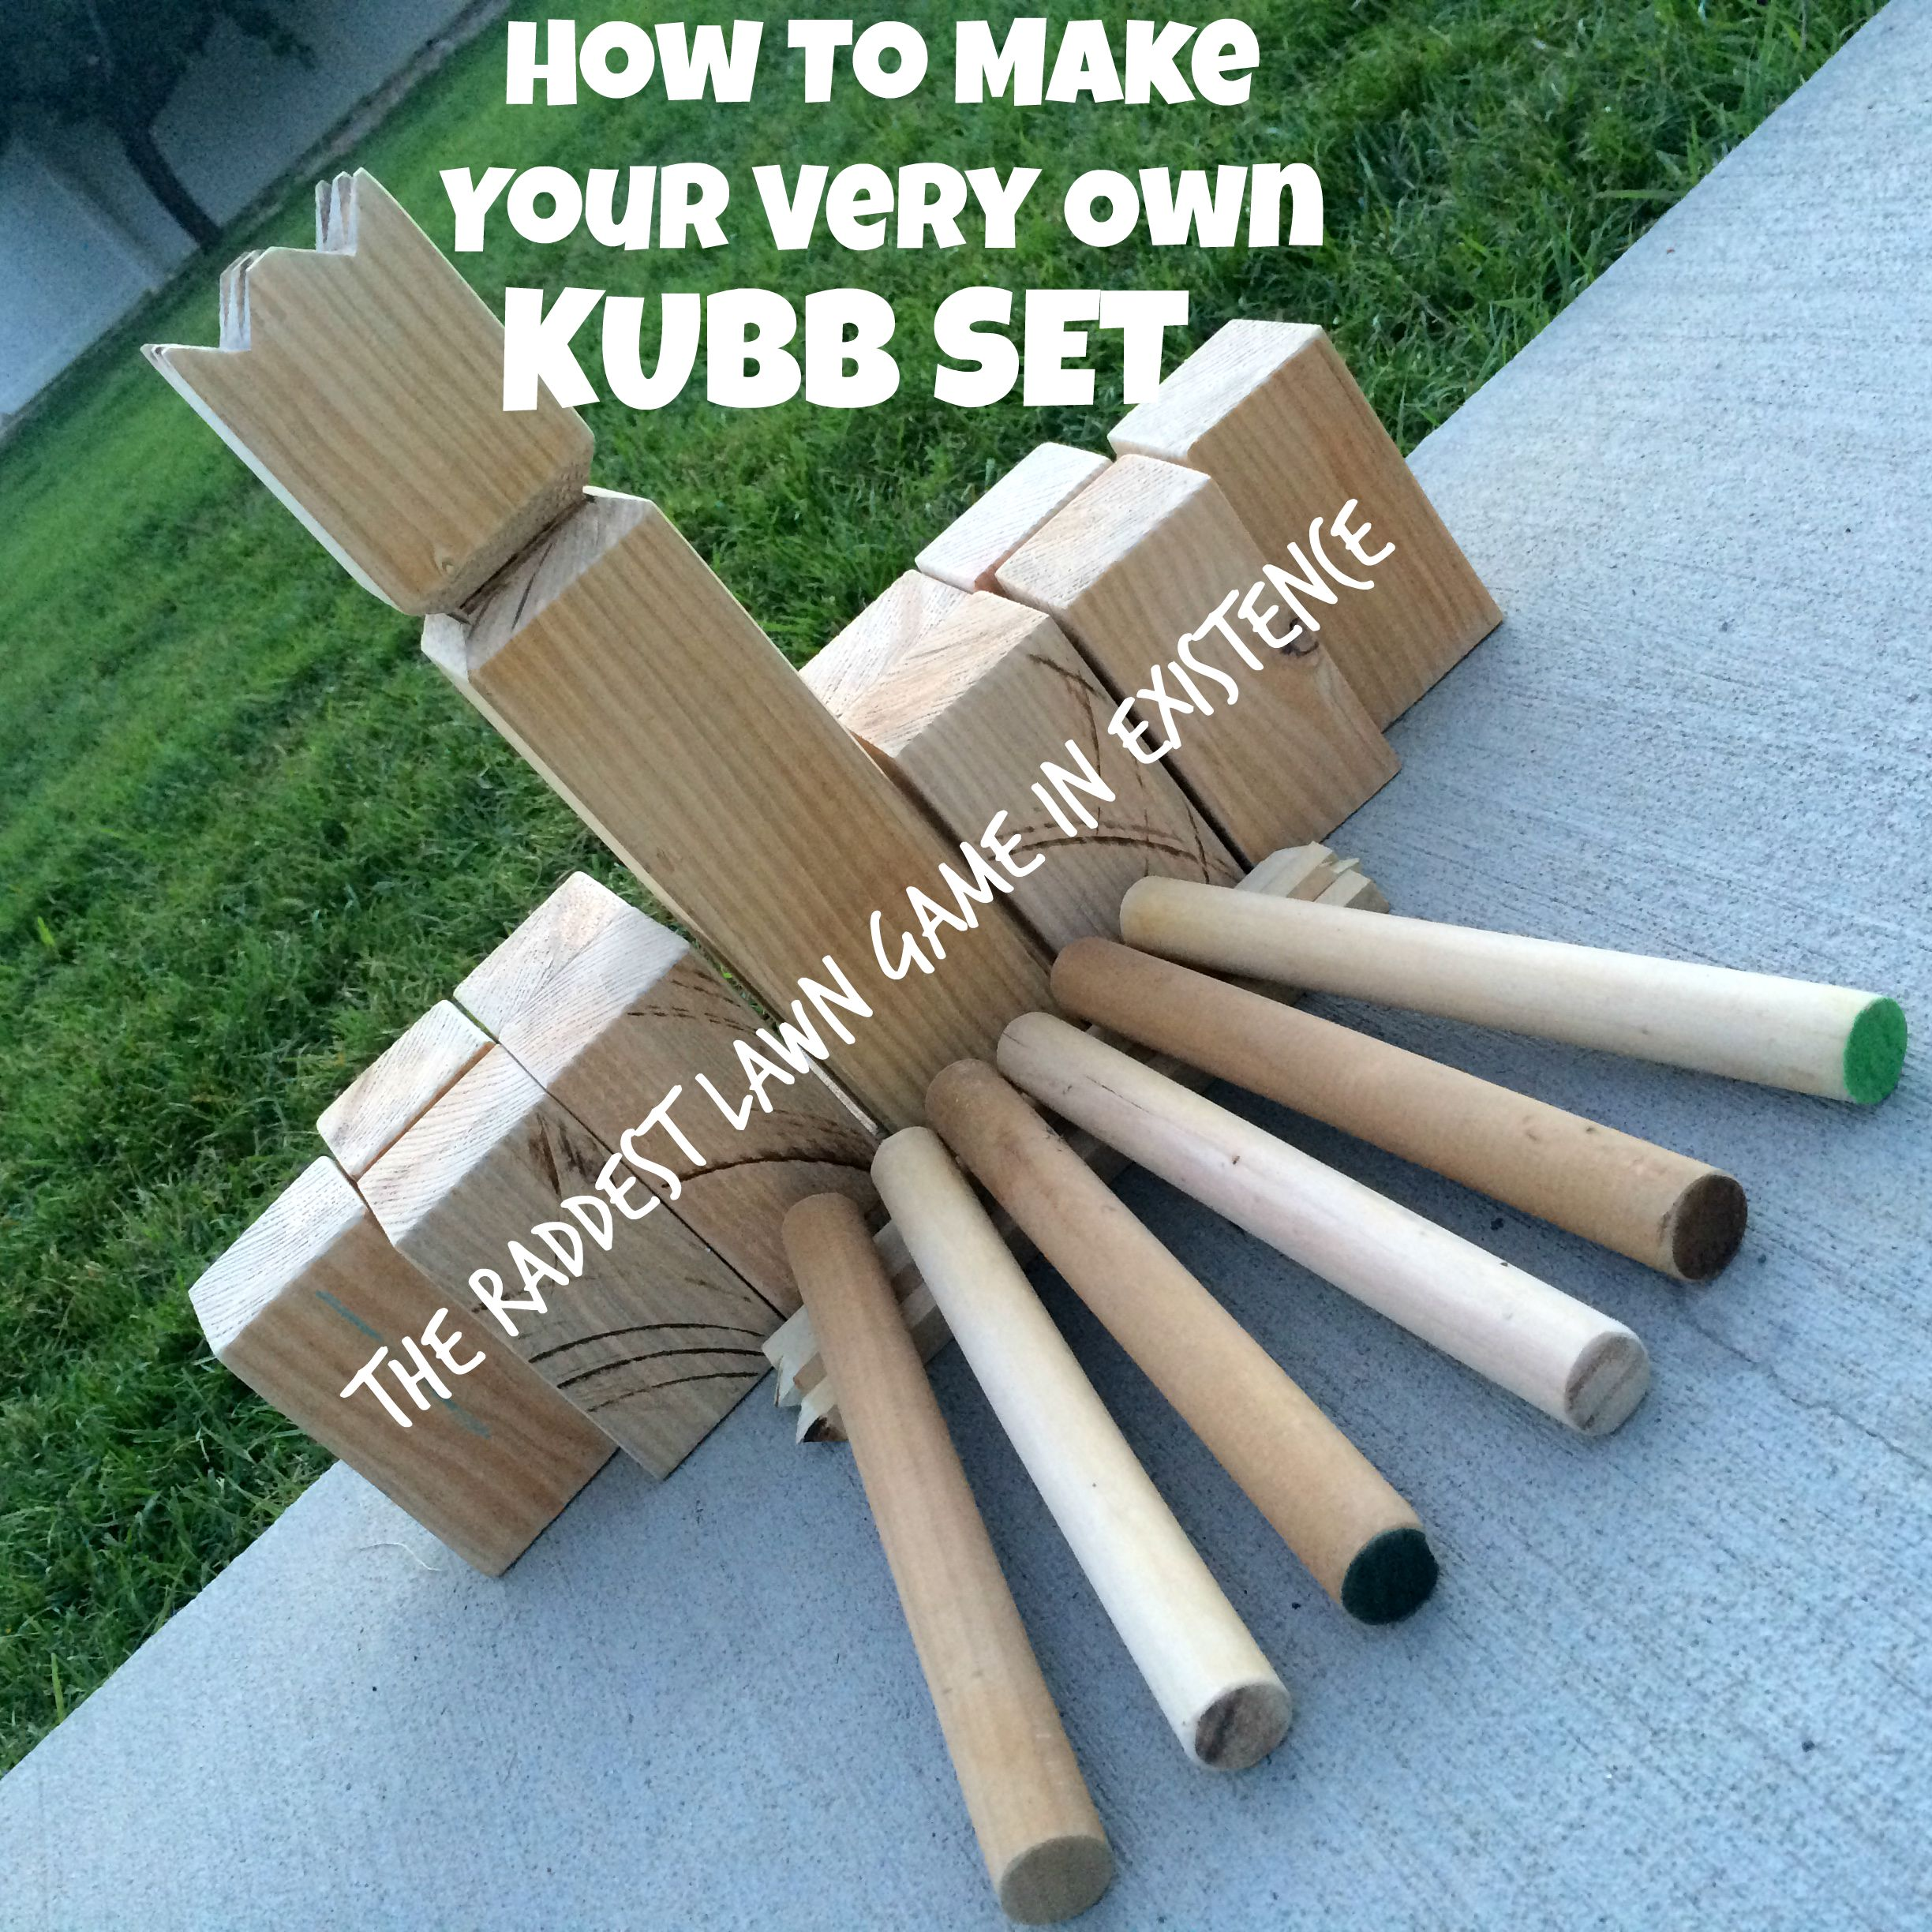 How To Make Your Very Own Kubb Set